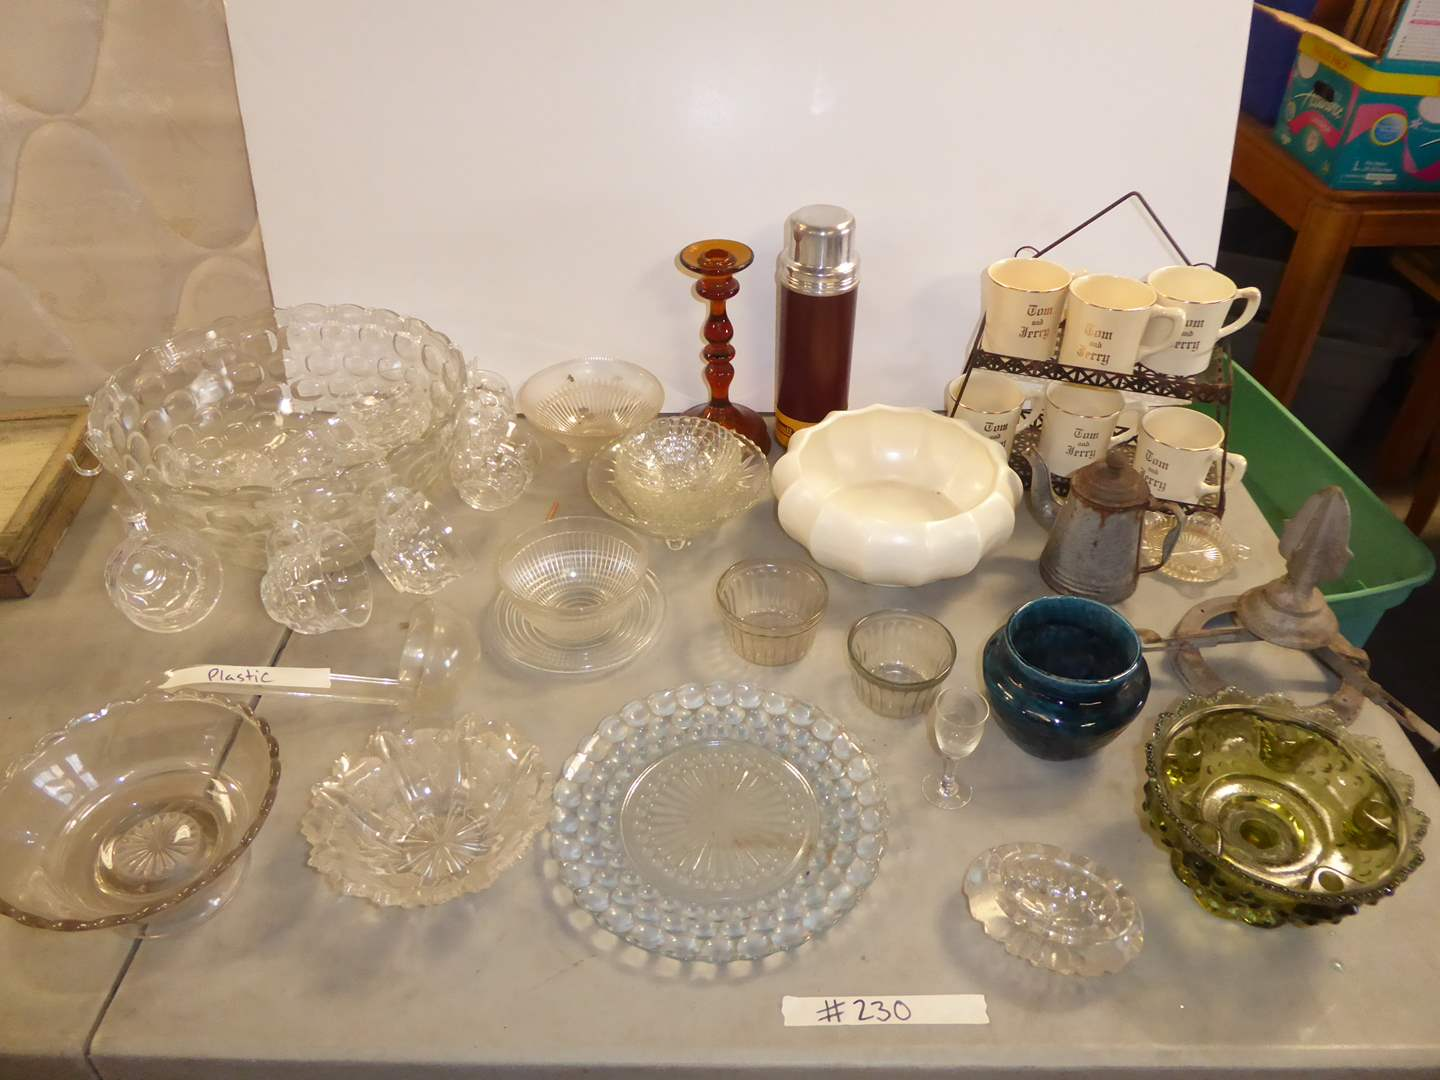 Lot # 230 - Glass Punch Bowl, Tom & Jerry Mugs & Other Glassware  (main image)